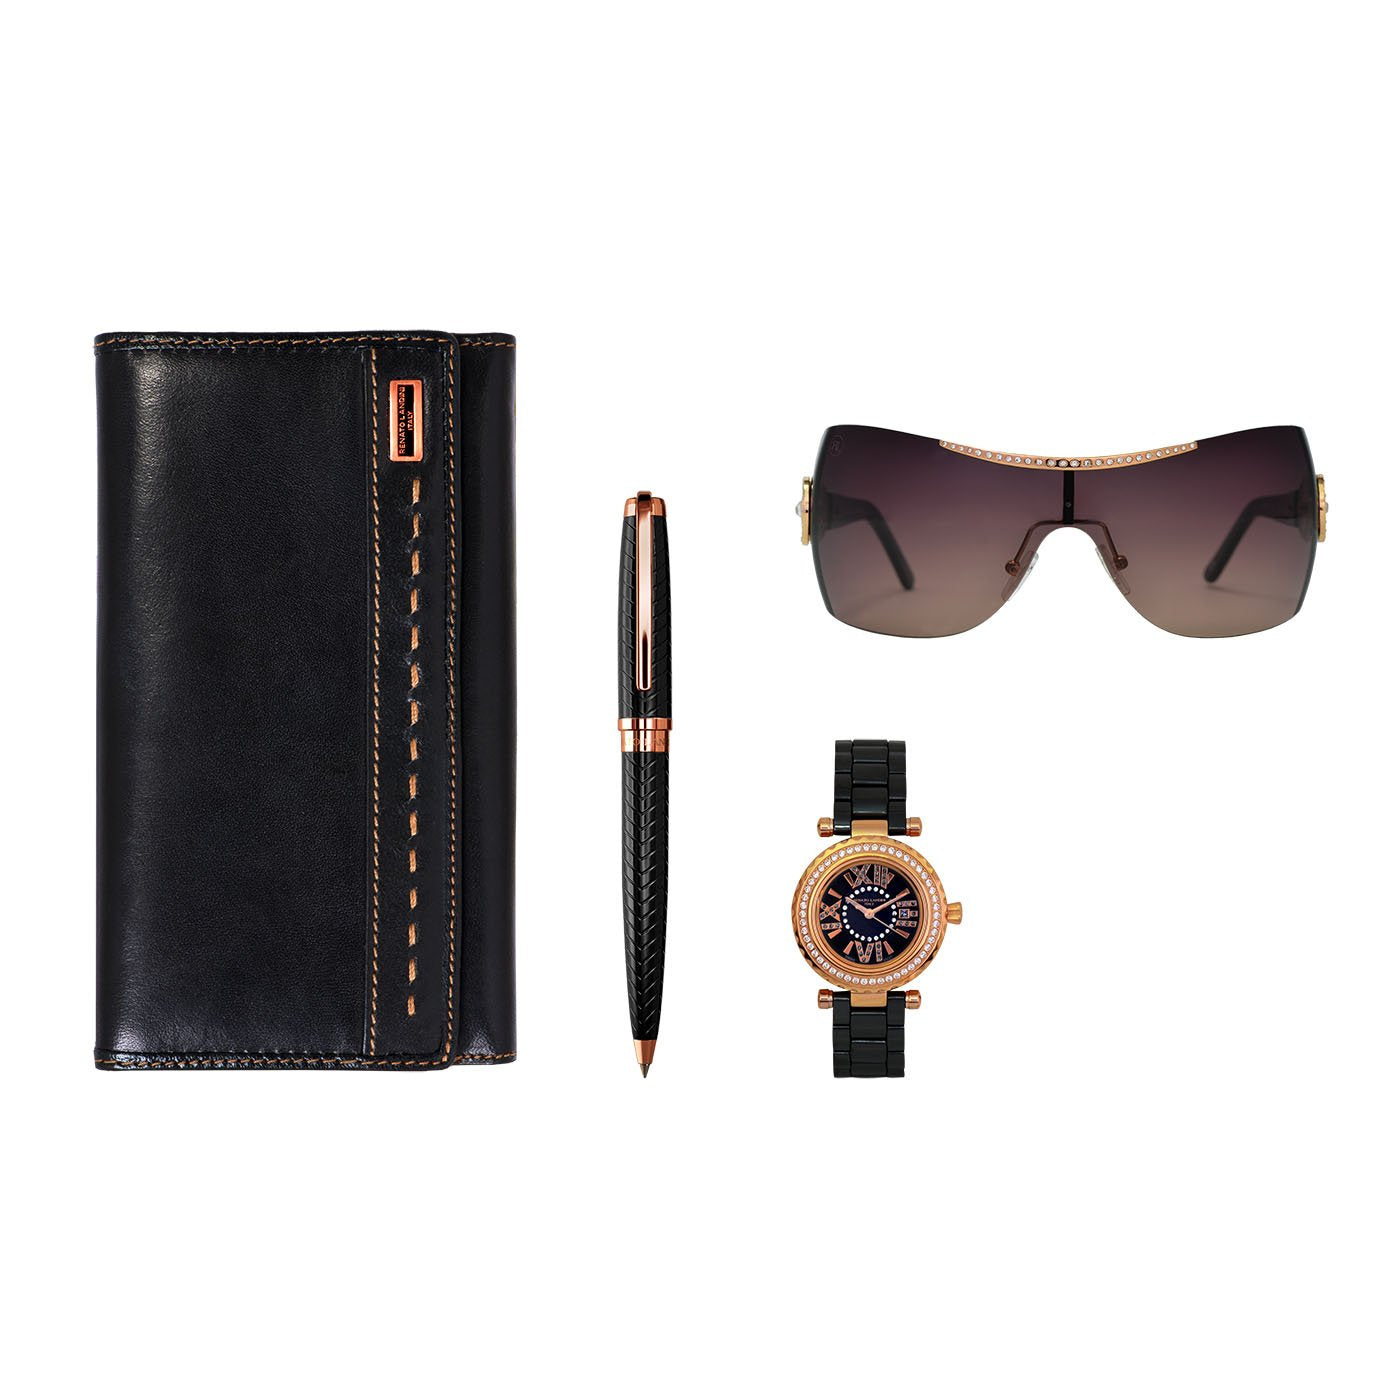 RENATO LANDINI Pen + Wallet + Watch + Sun Glasses/ Women a